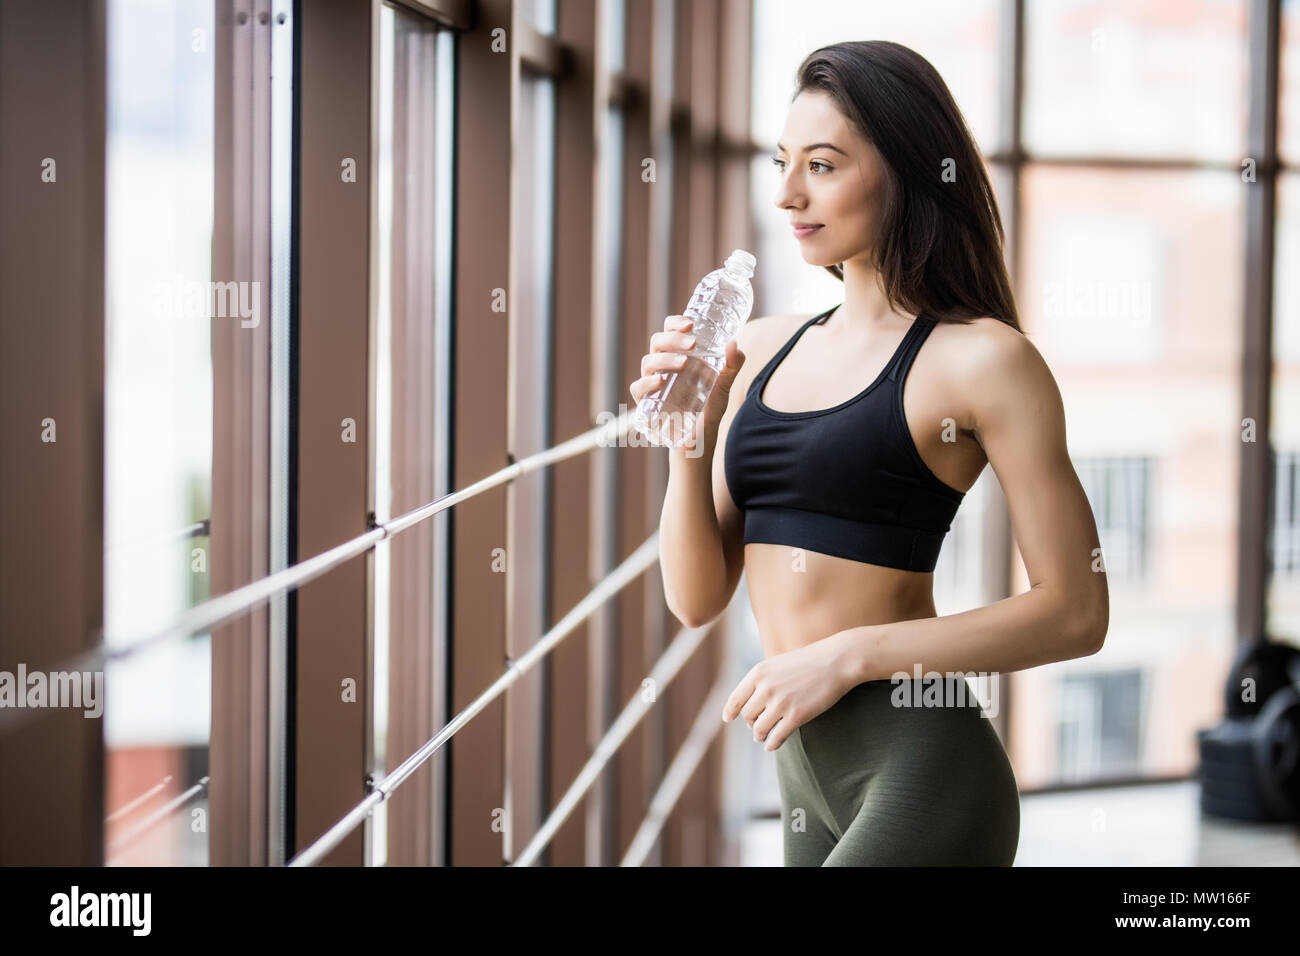 when should we drink water after yoga